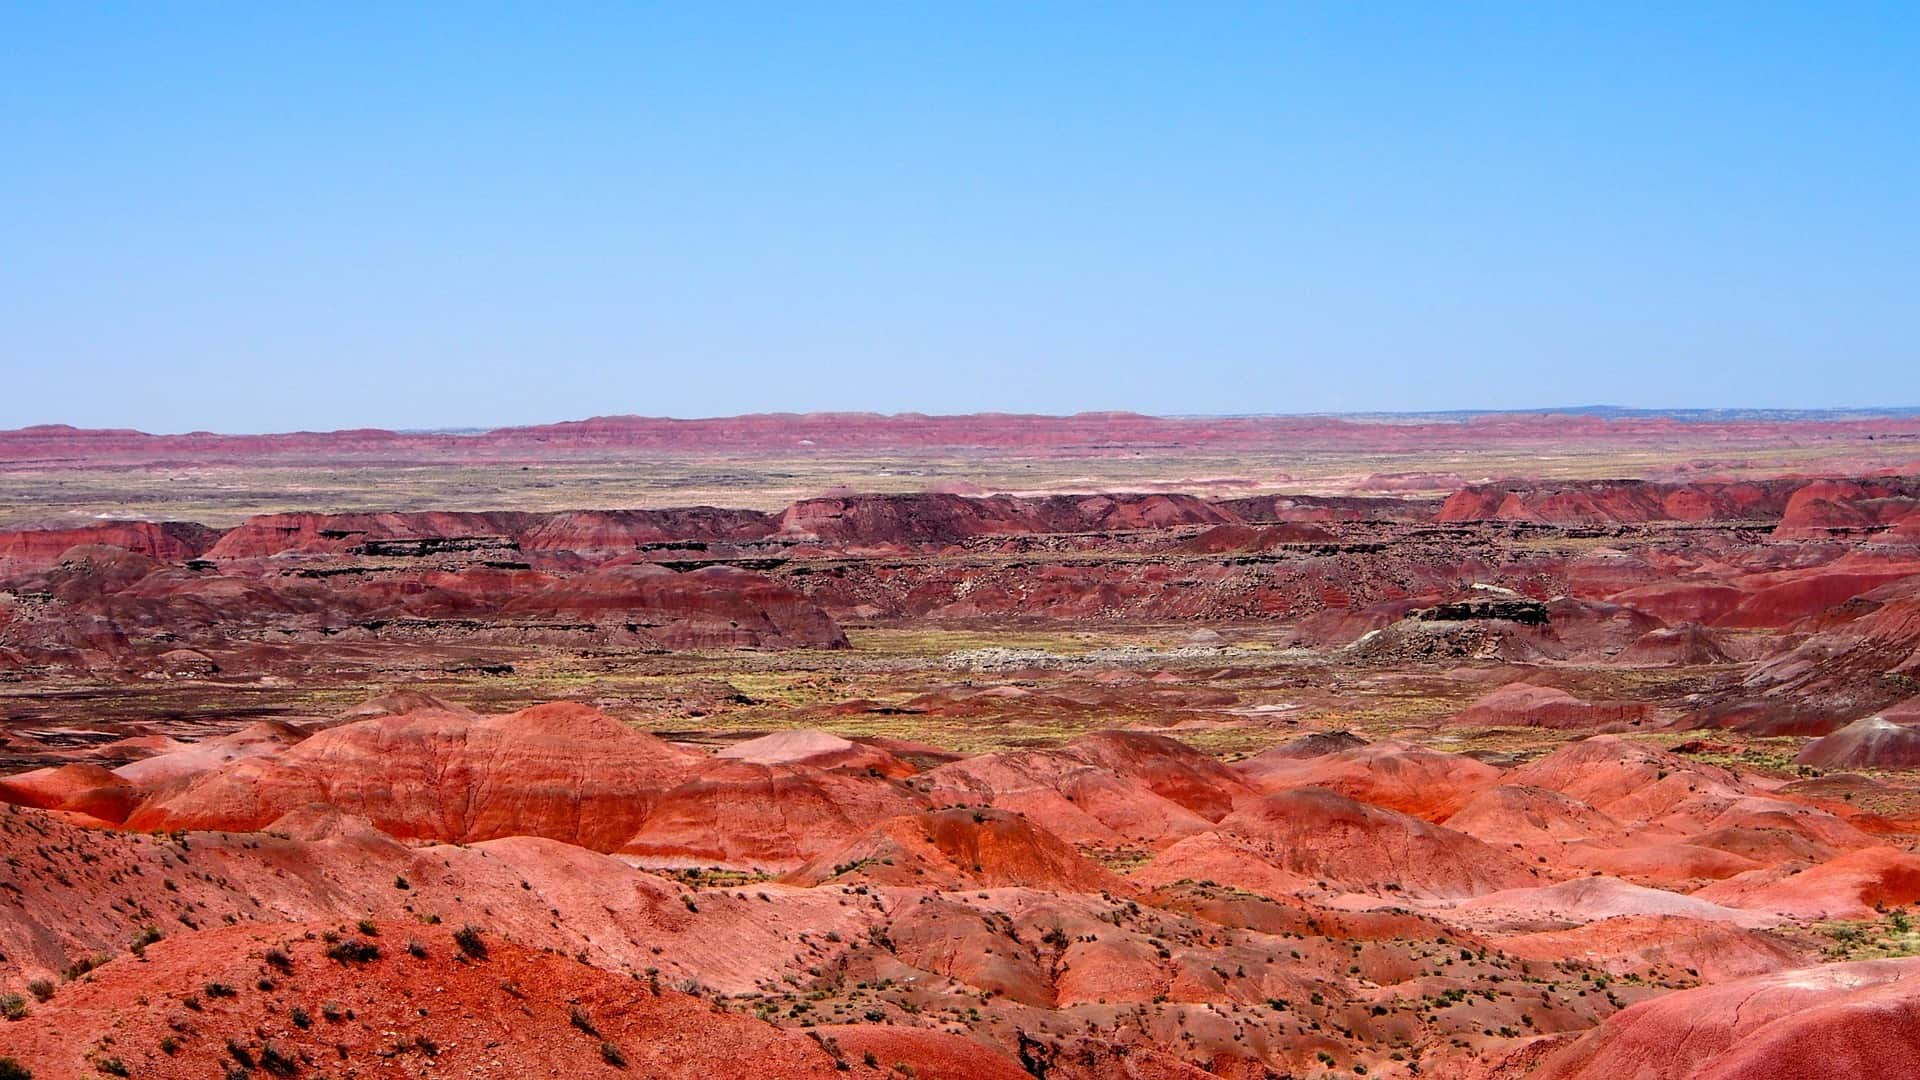 blue sky with the red horizon of the painted desert in Arizona